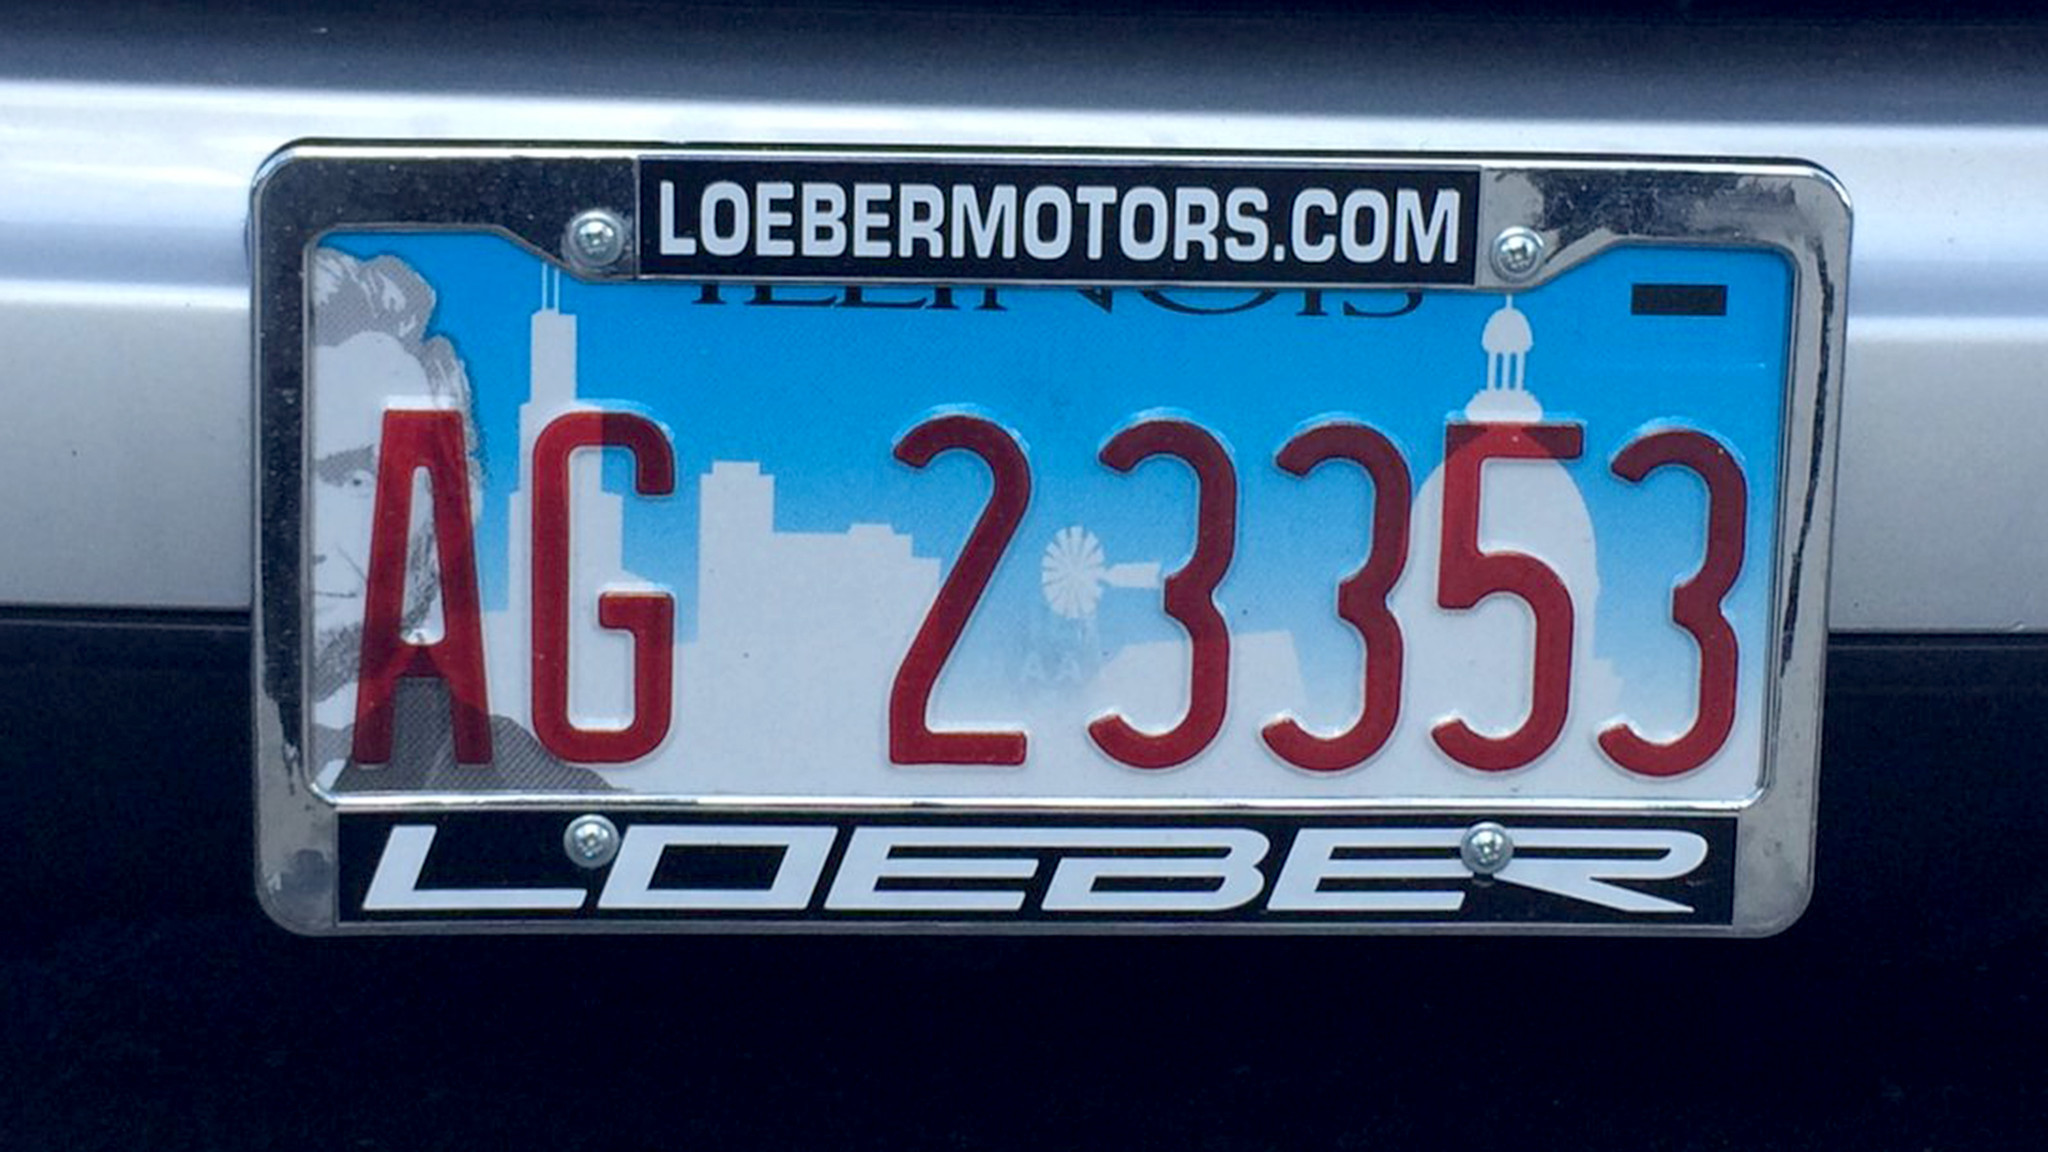 On further review, Illinois\' new license plates even worse ...